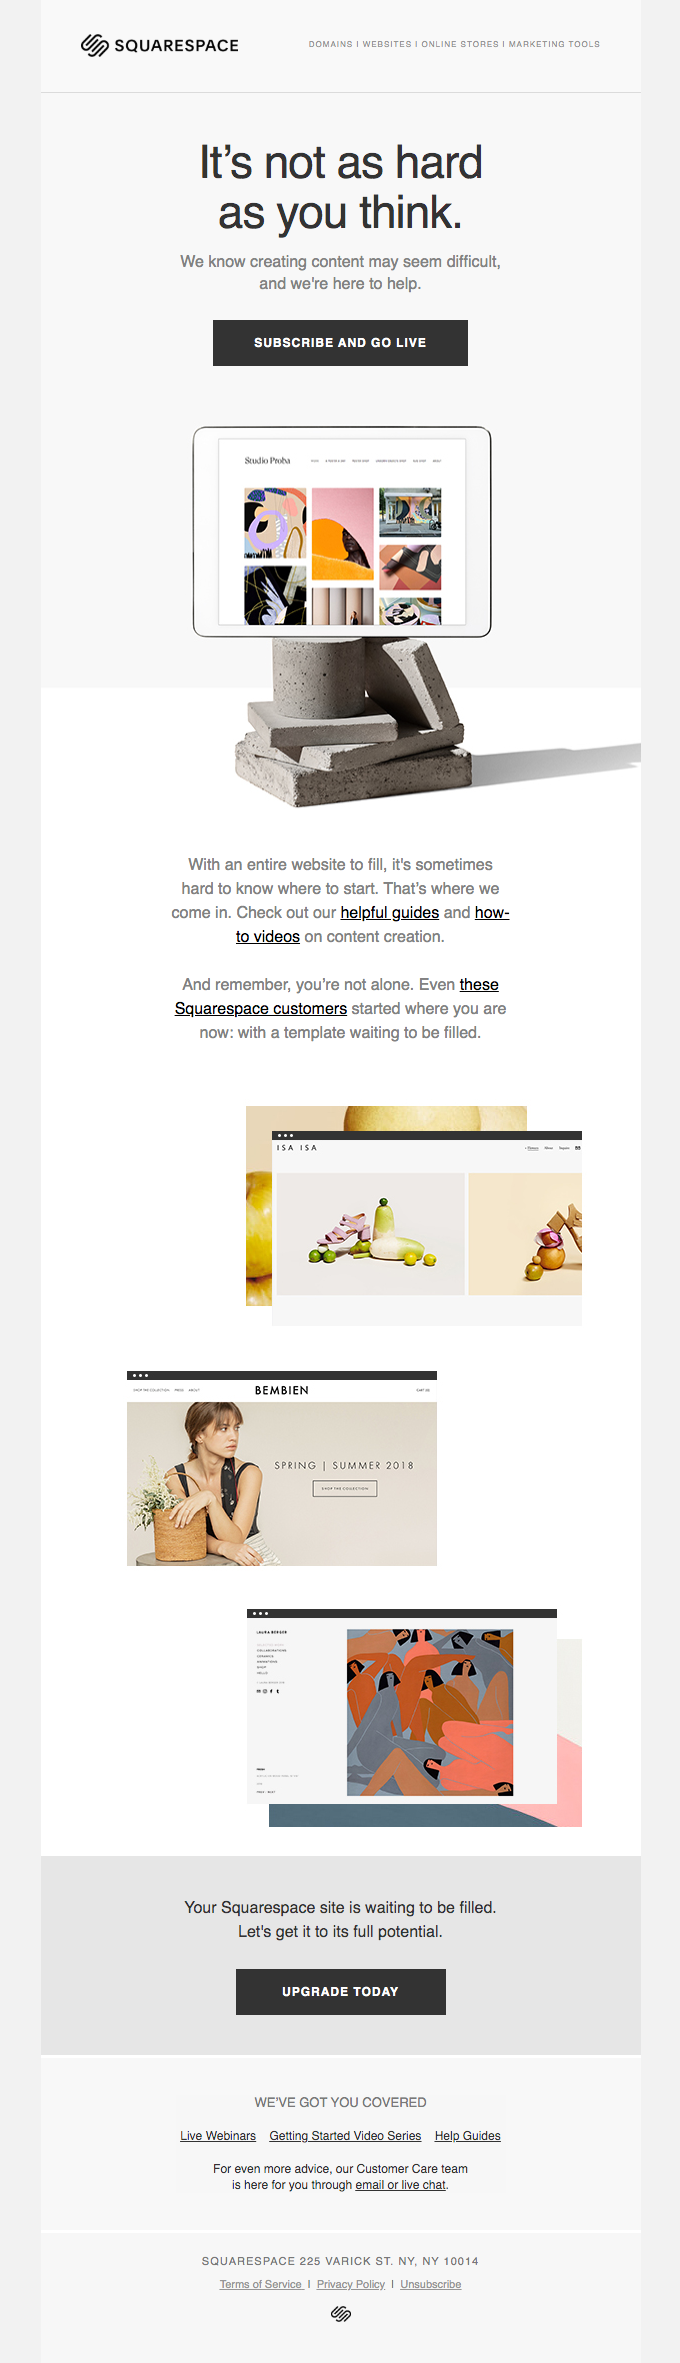 squarespace-email1